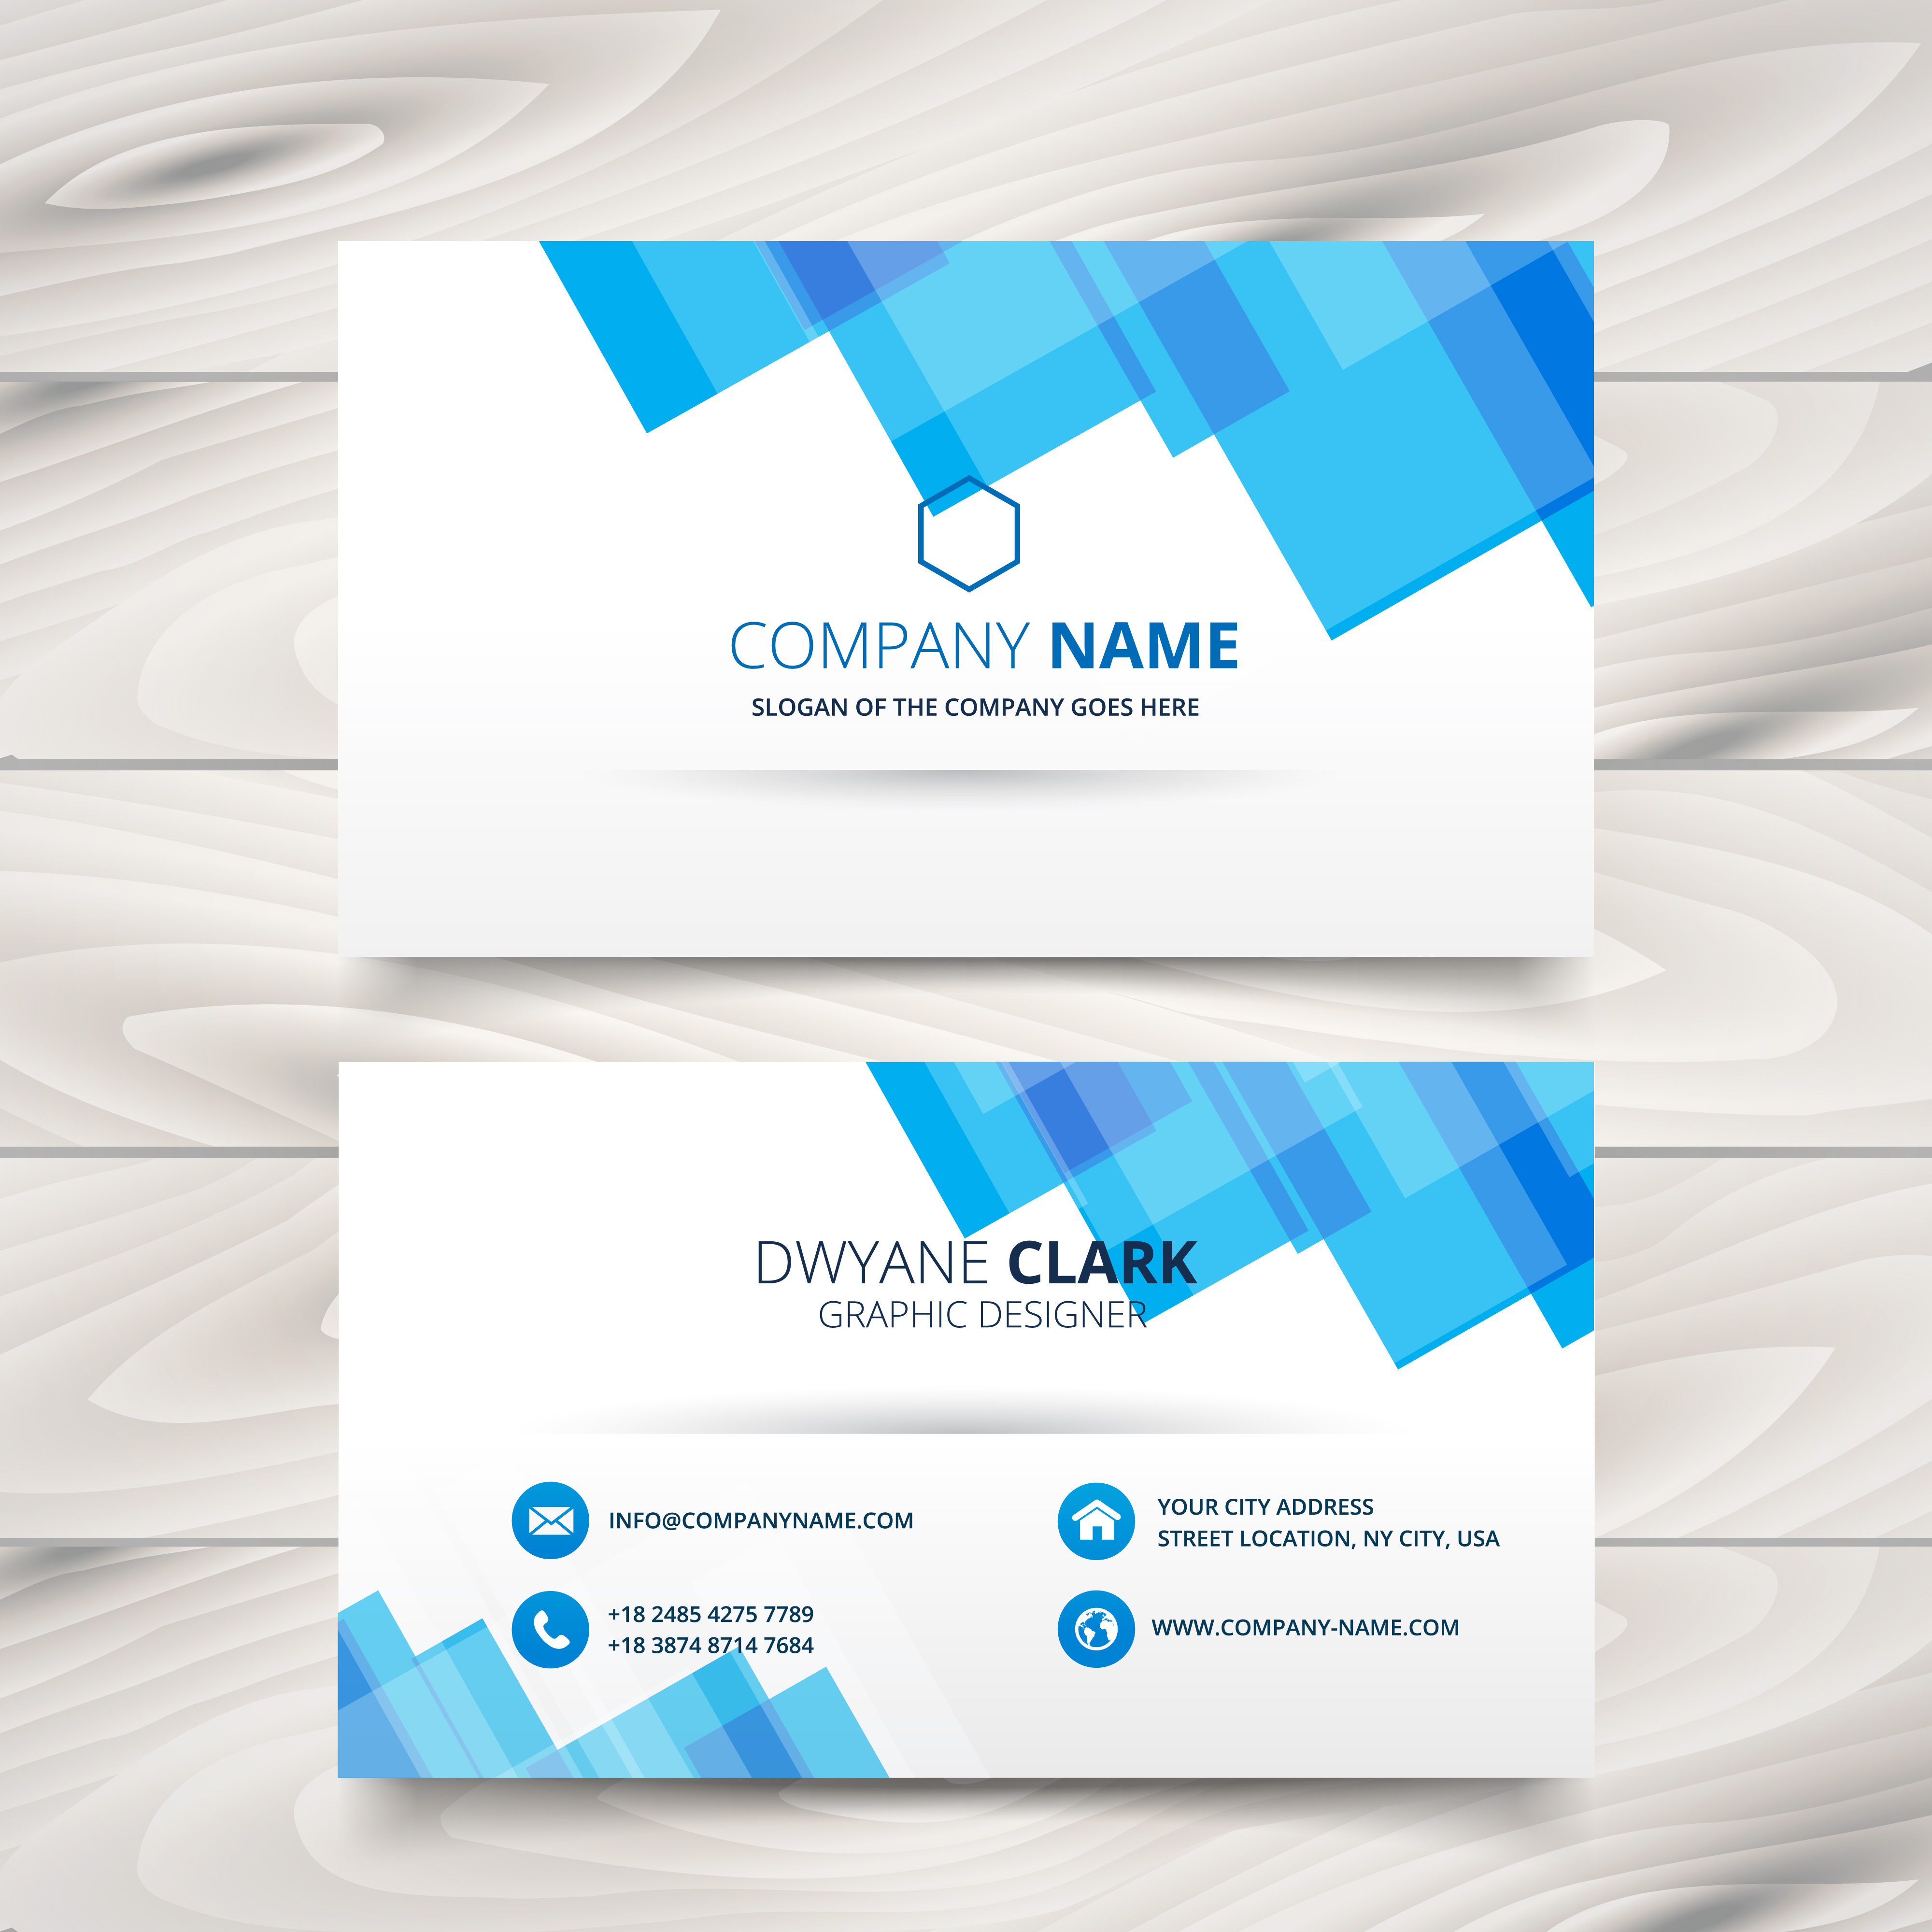 clean white and blue business card template design